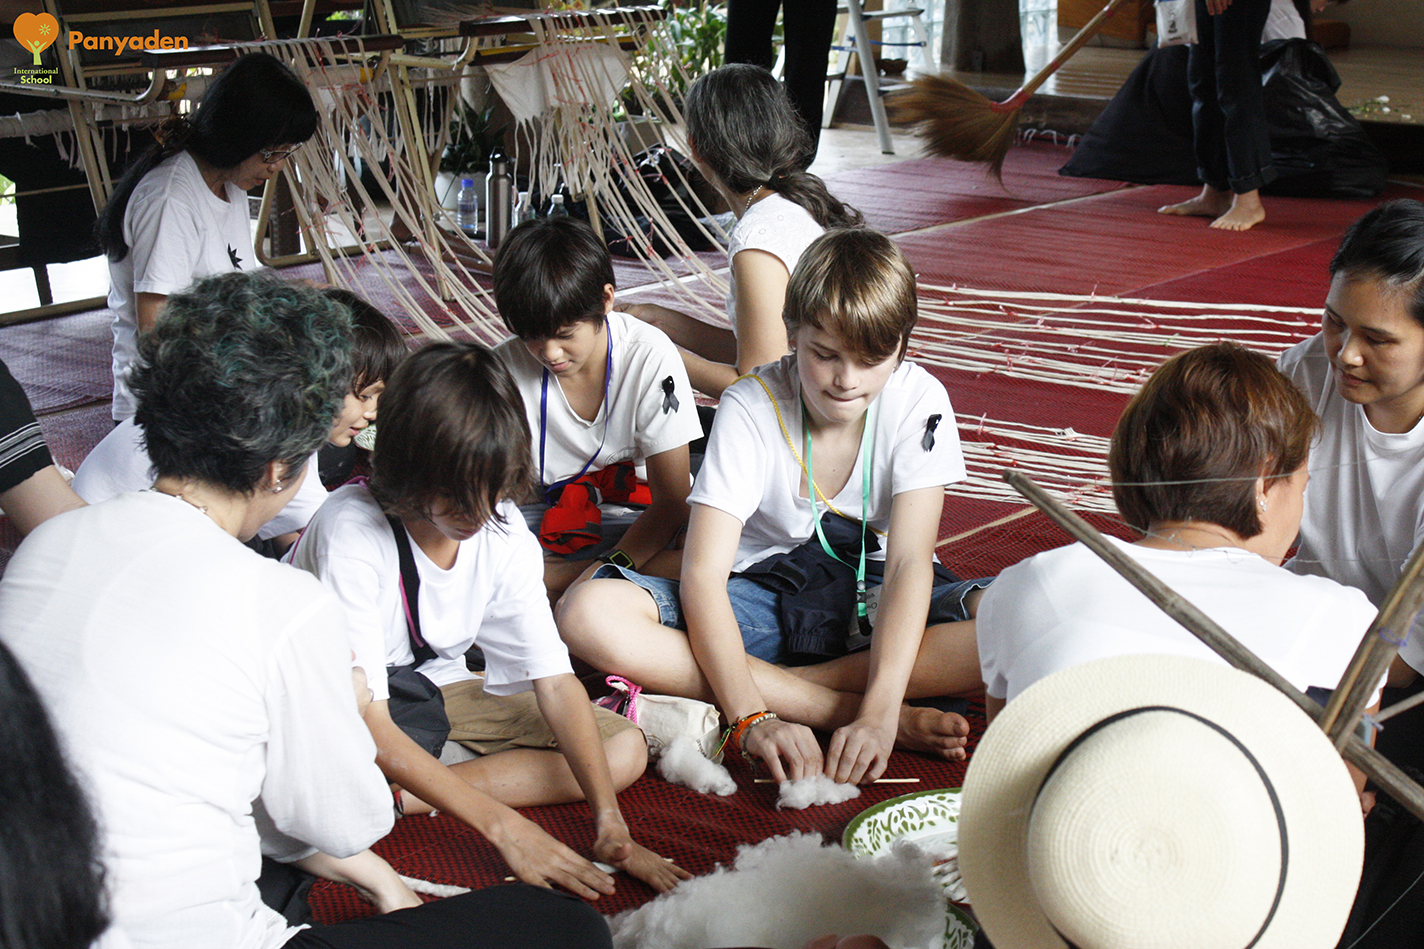 Removing seeds from cotton lint, Panyaden students at Jual; Khatina in Chiang Rai